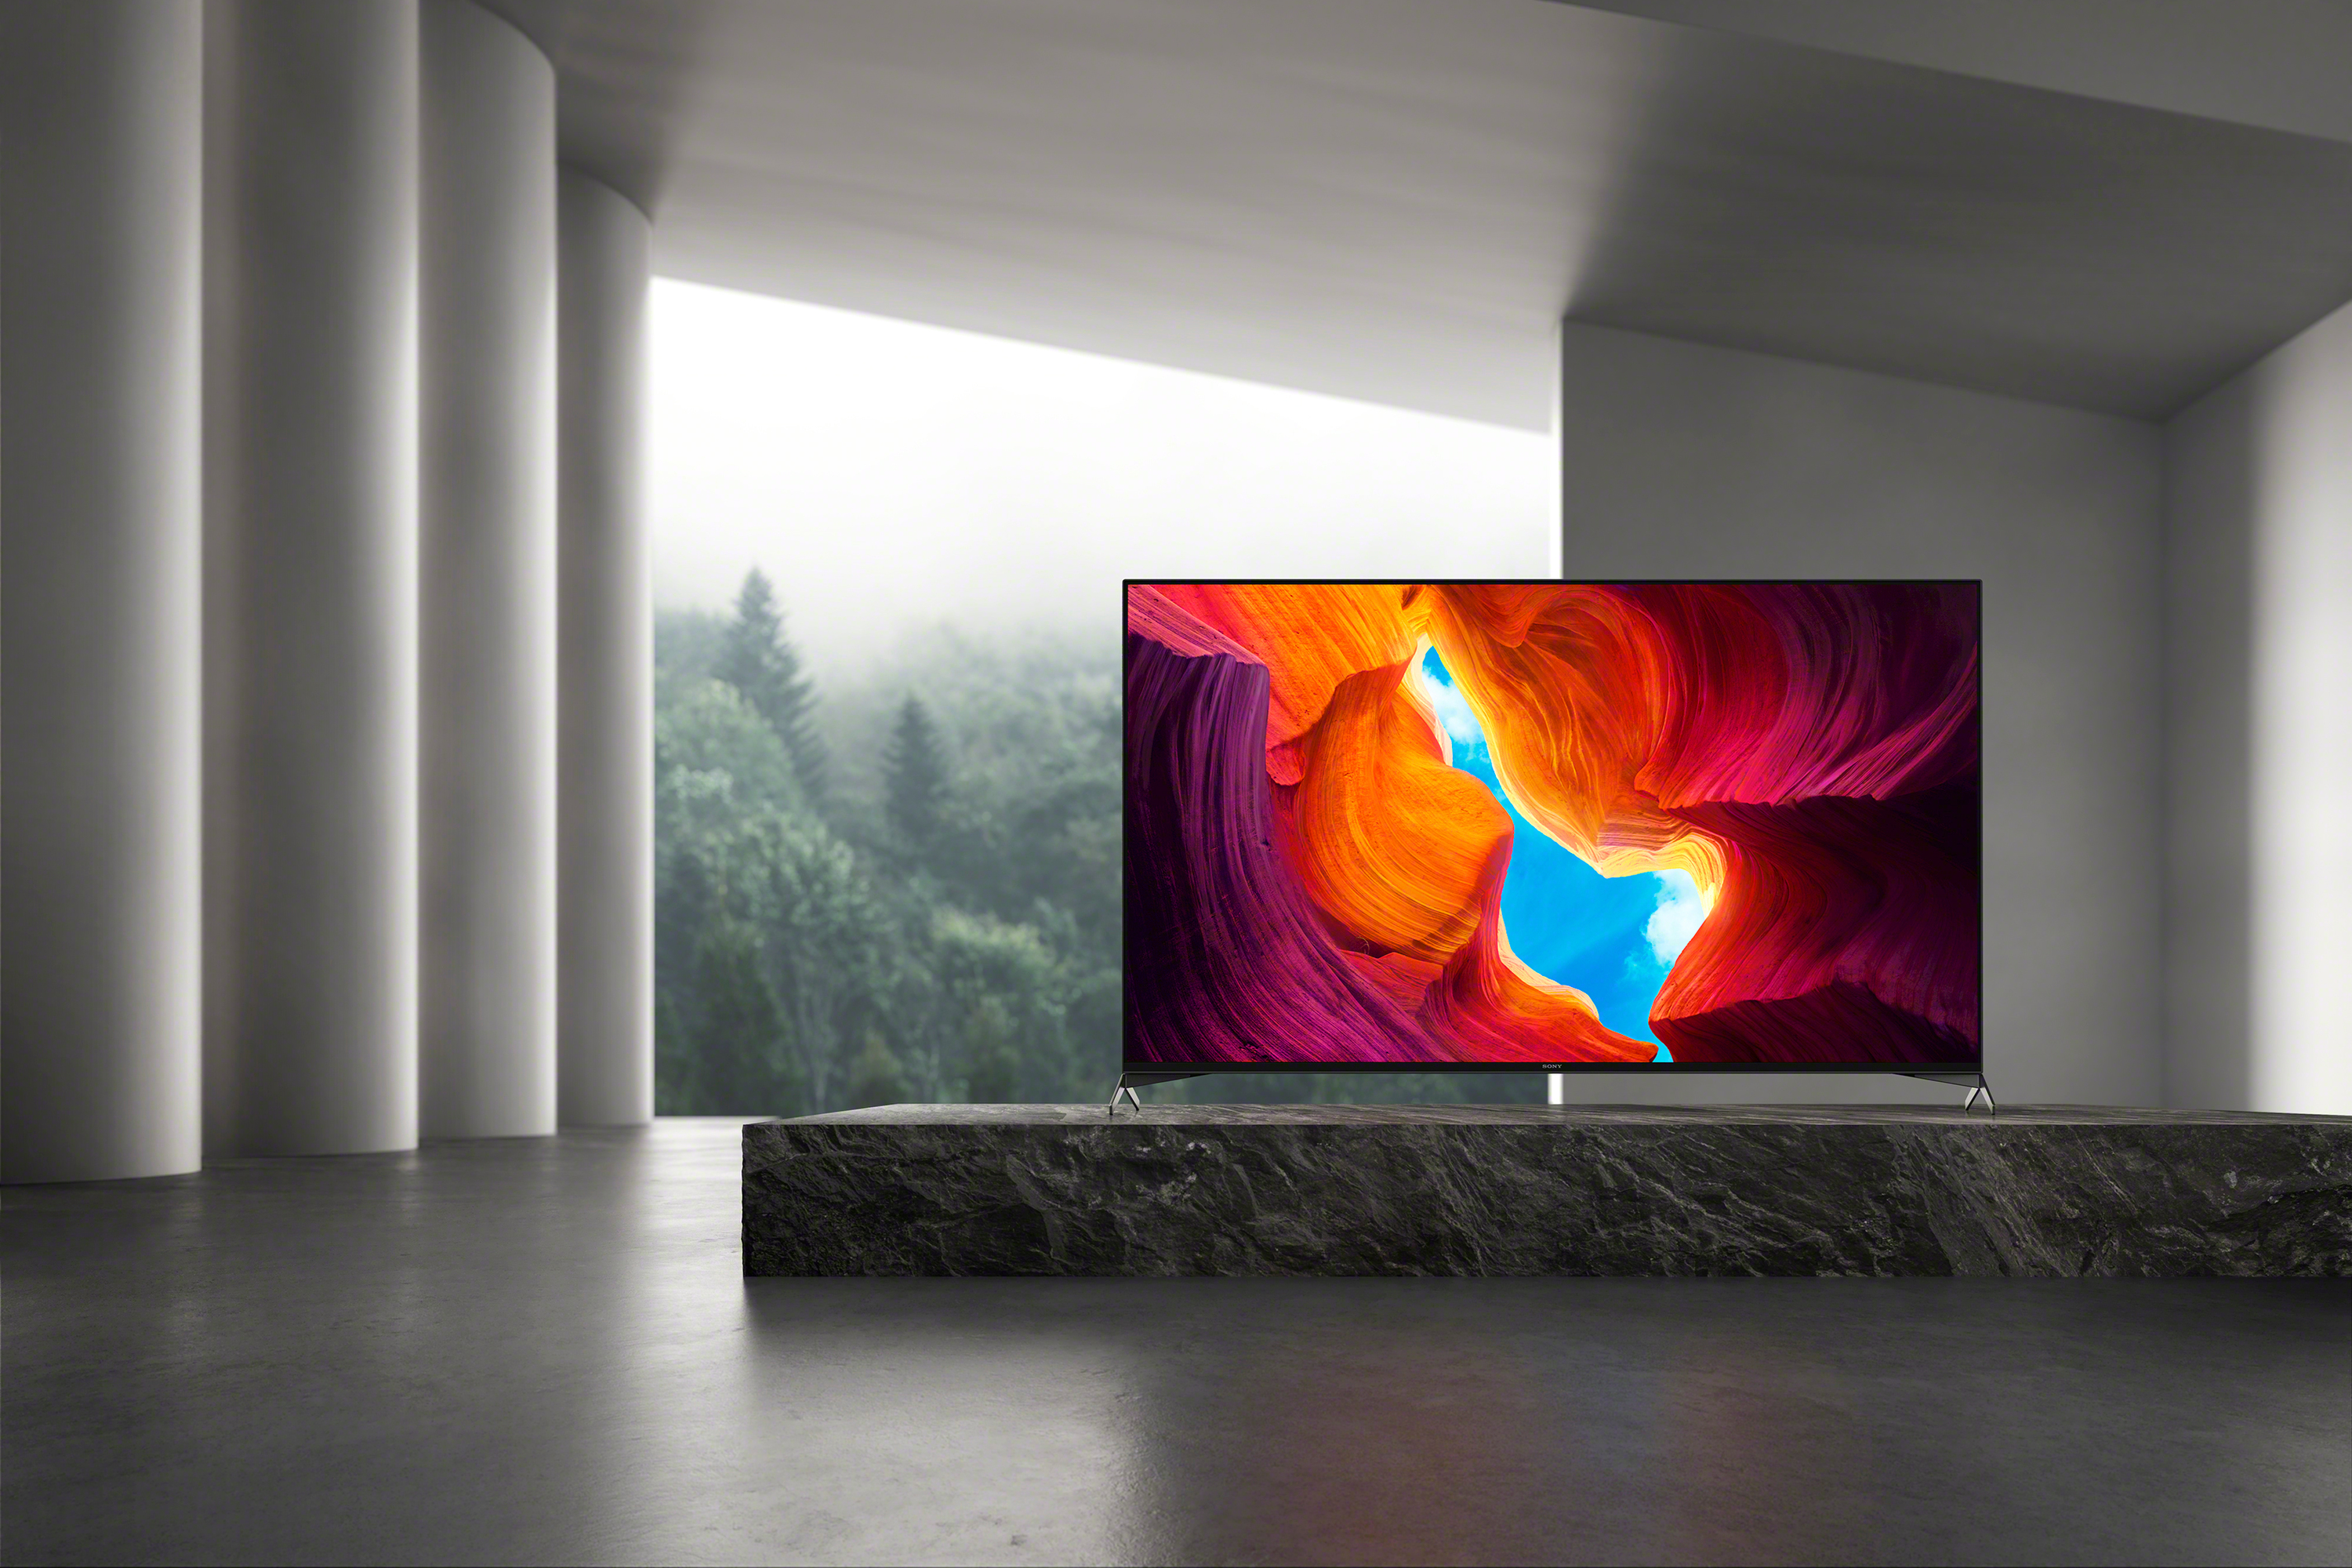 Sony XBR950H LED 4K Ultra HD TV with X1 Ultimate Processor